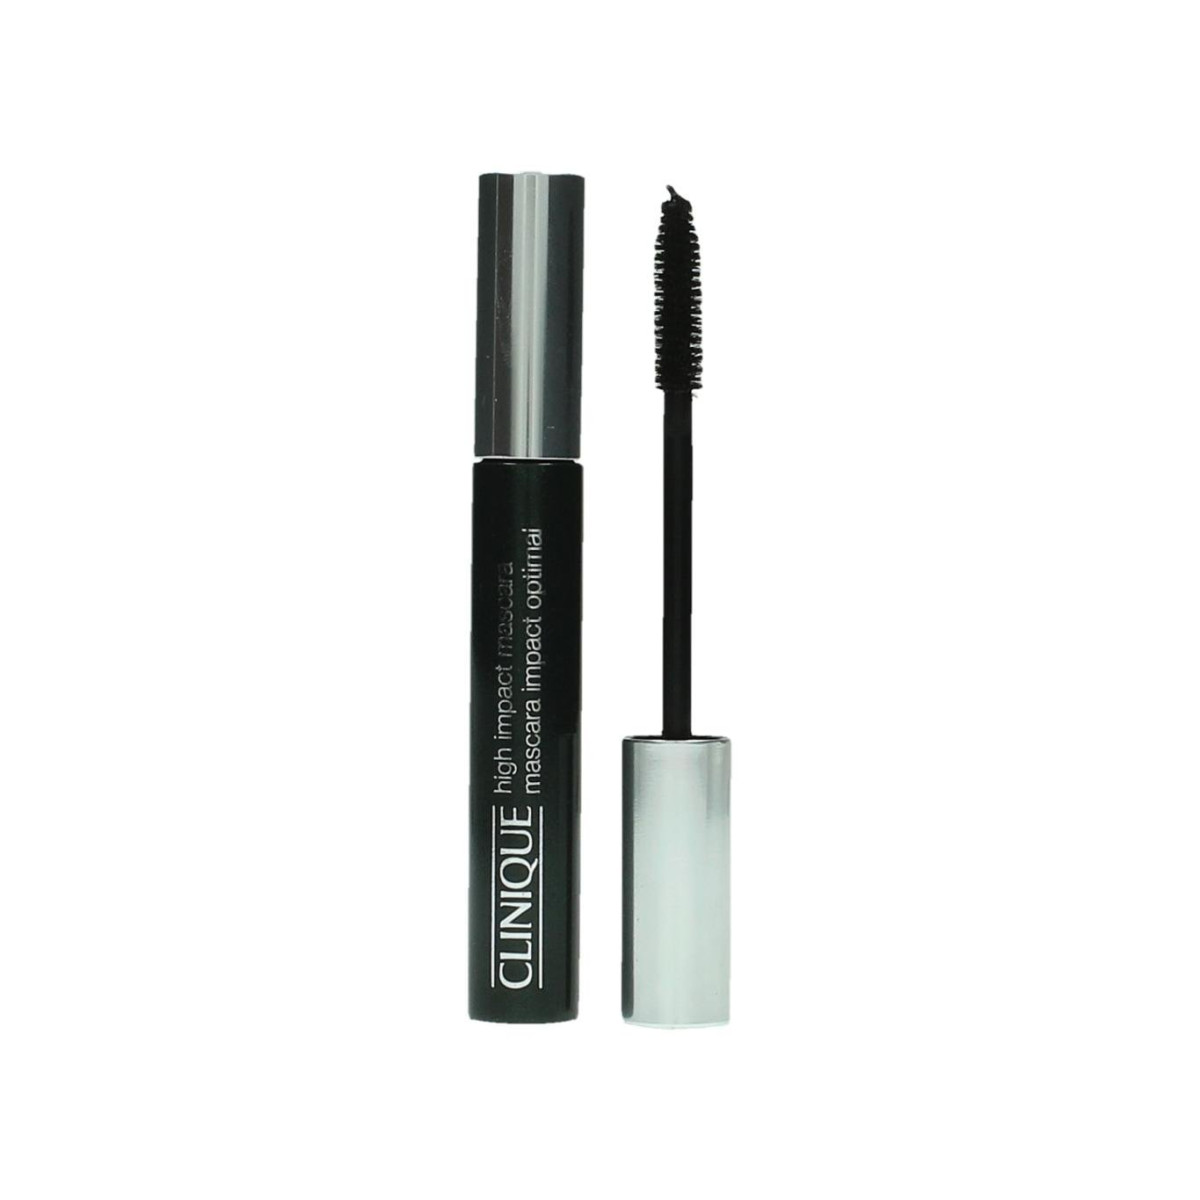 2fb2bd81b9d Clinique High Impact Mascara, 01 Black .28 oz / 7 mL